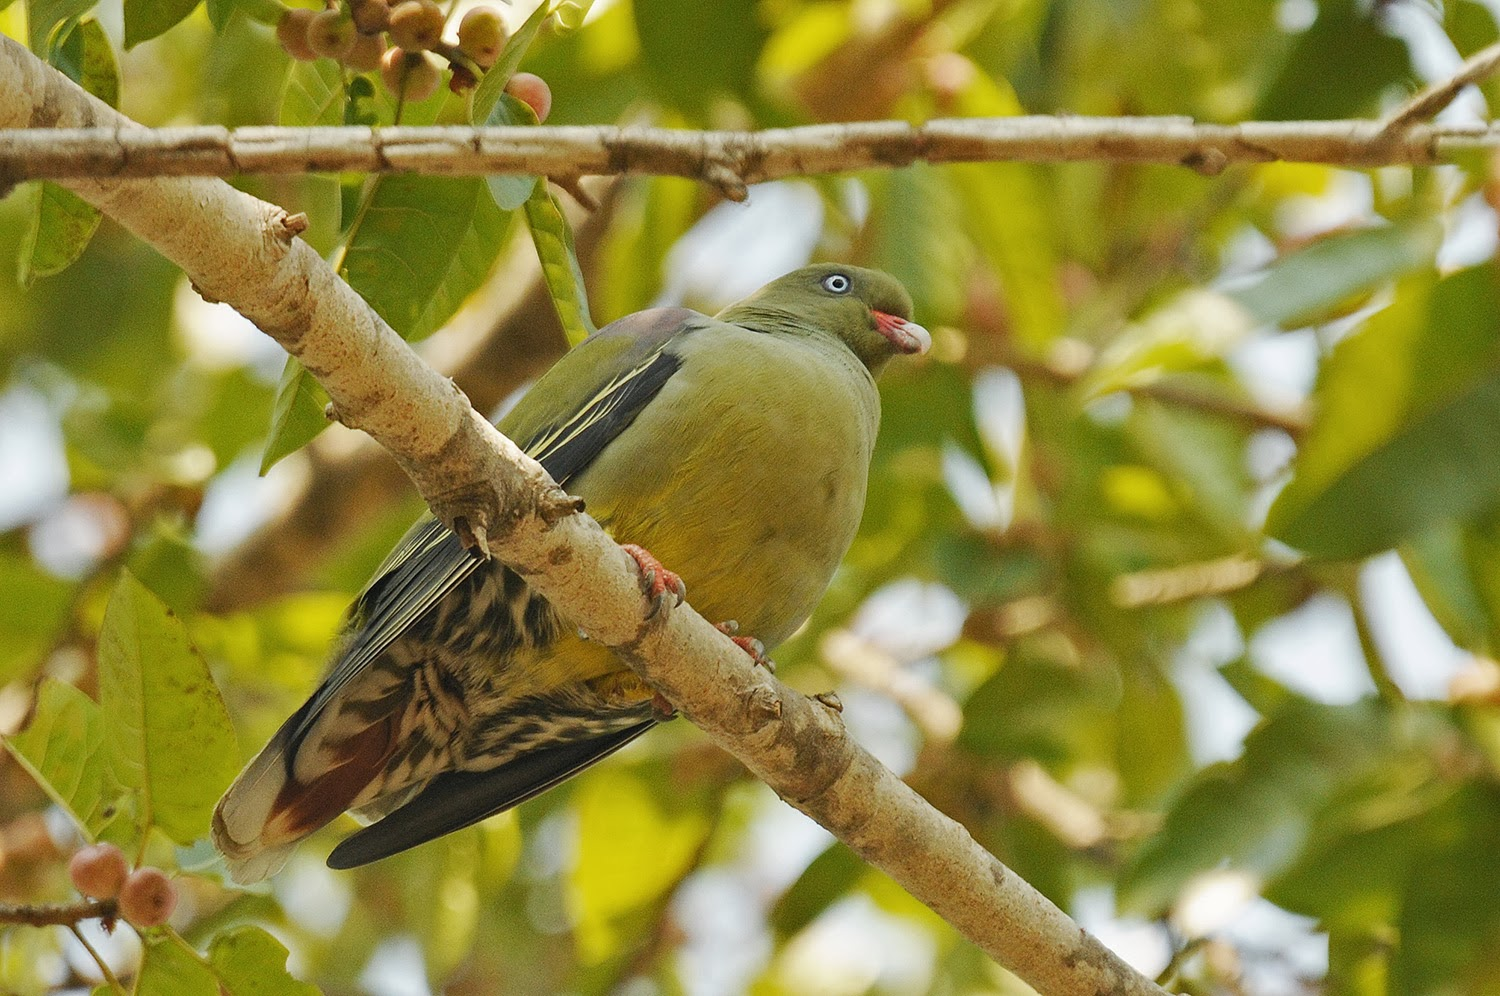 African Green Pigeon on a branch